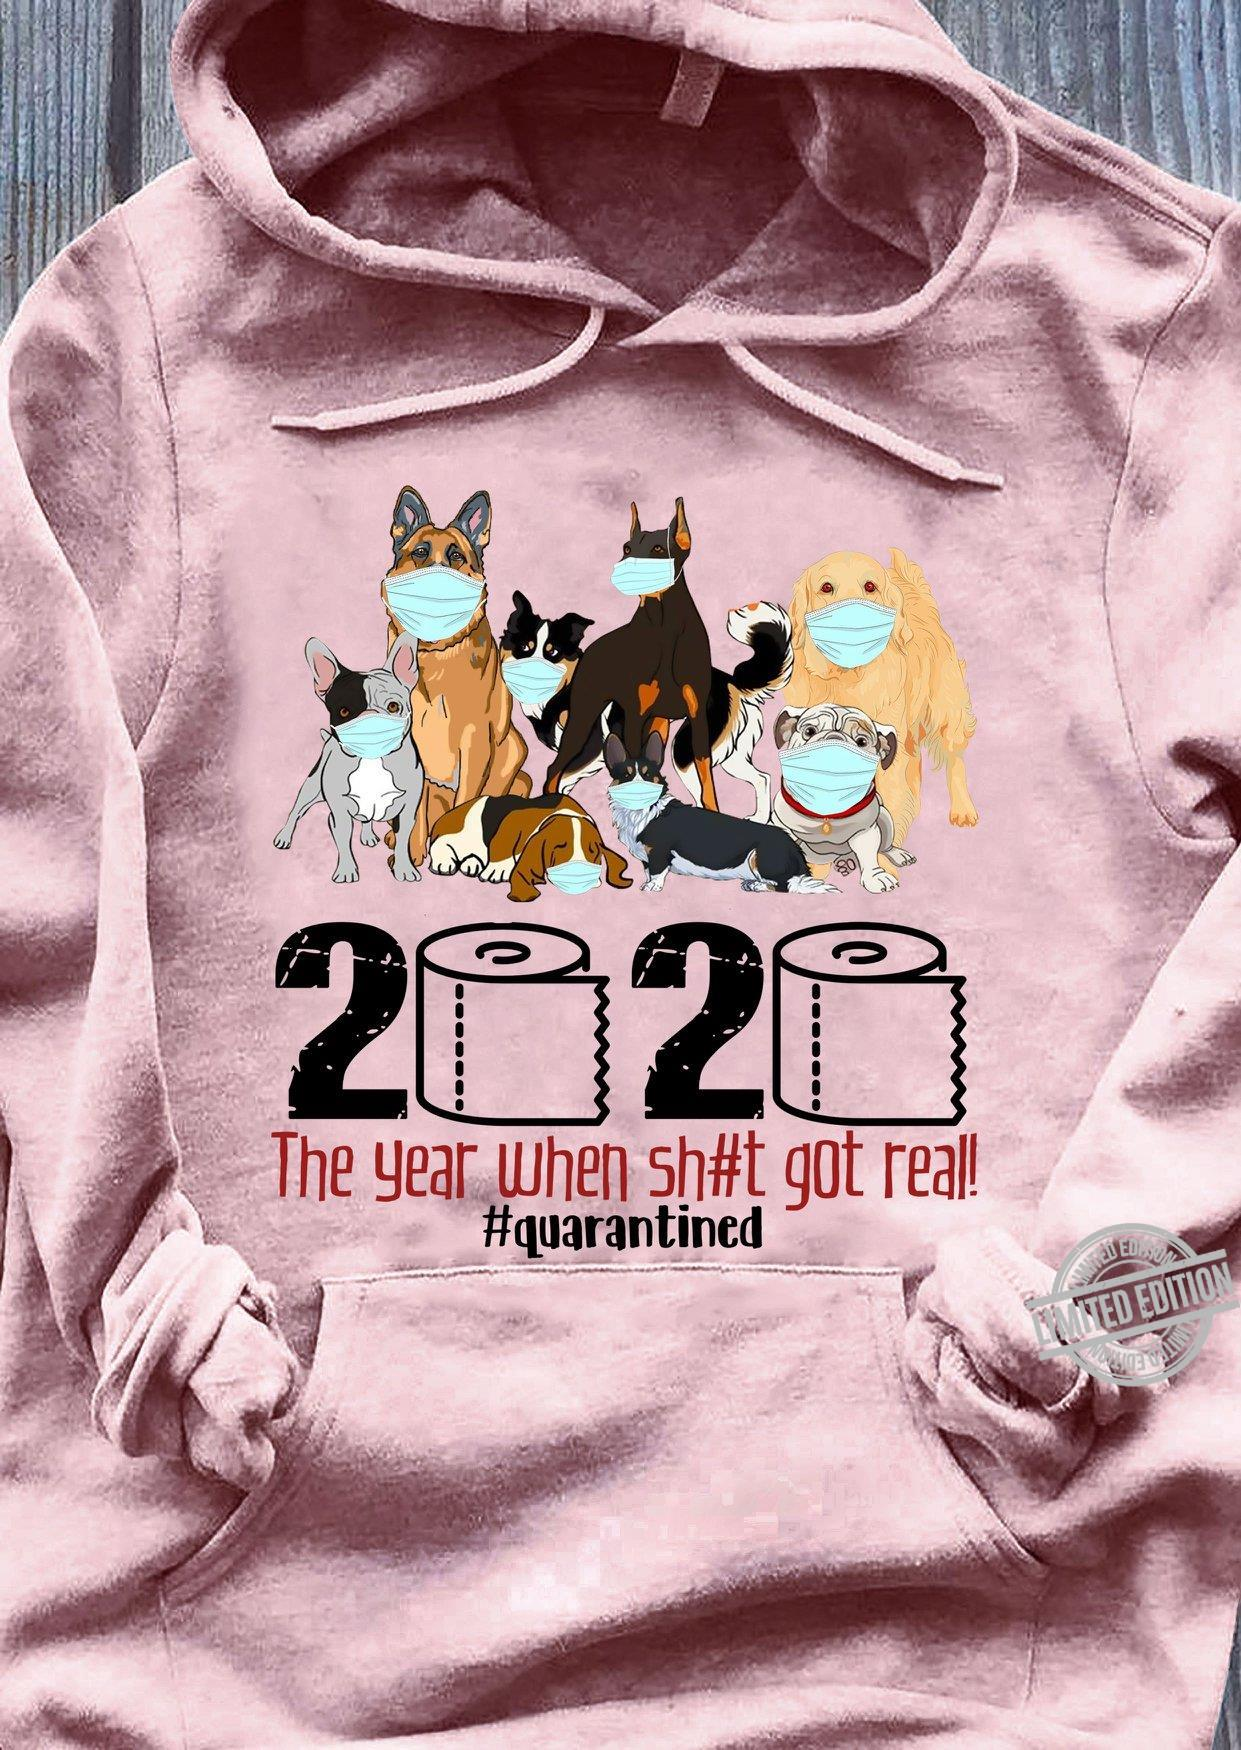 2020 The Year When Shit Got Real Quarantined Shirt